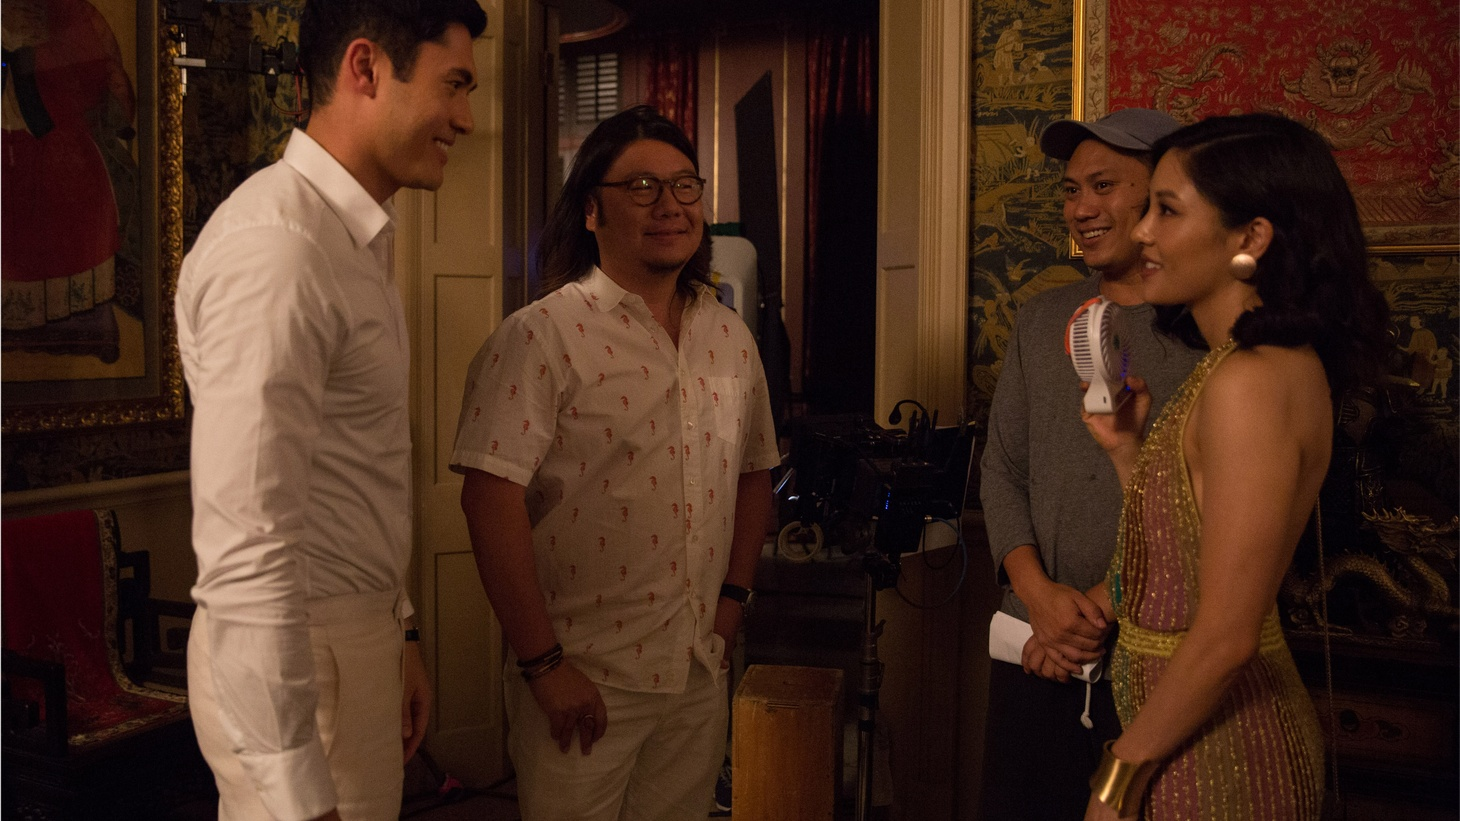 Author Kevin Kwan and director Jon M. Chu passionately wanted the movie version of 'Crazy Rich Asians' to play in theaters. So they turned down a huge offer from Netflix and took their chances with Warner Brothers.